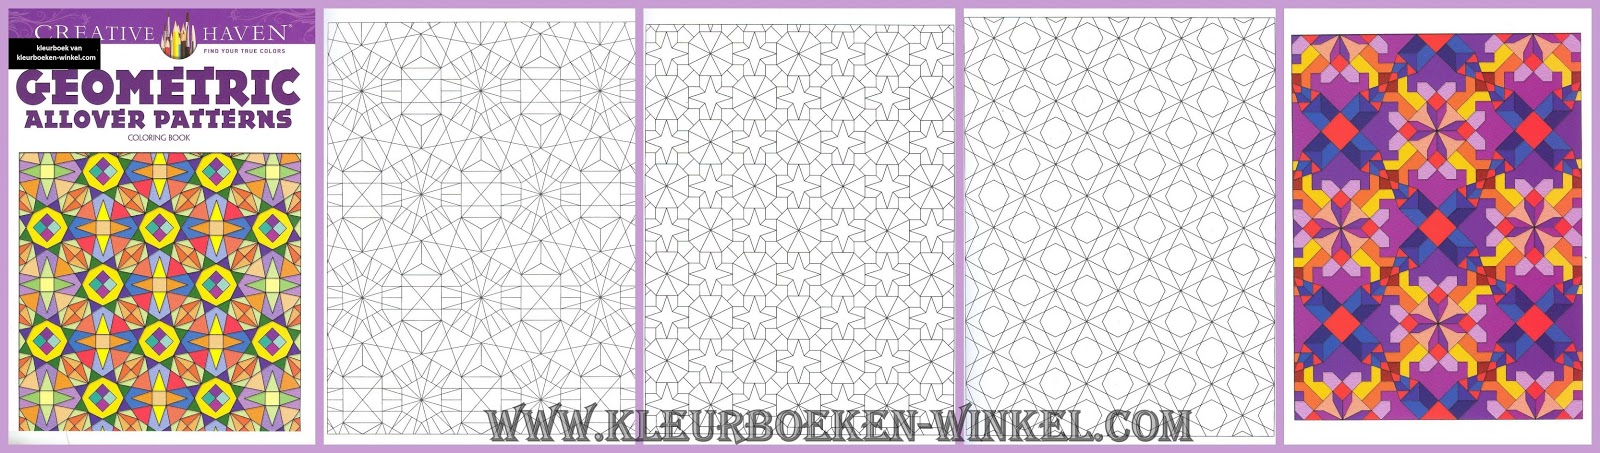 CH 35 geometric allover patterns, kleurboek geometrische patronen